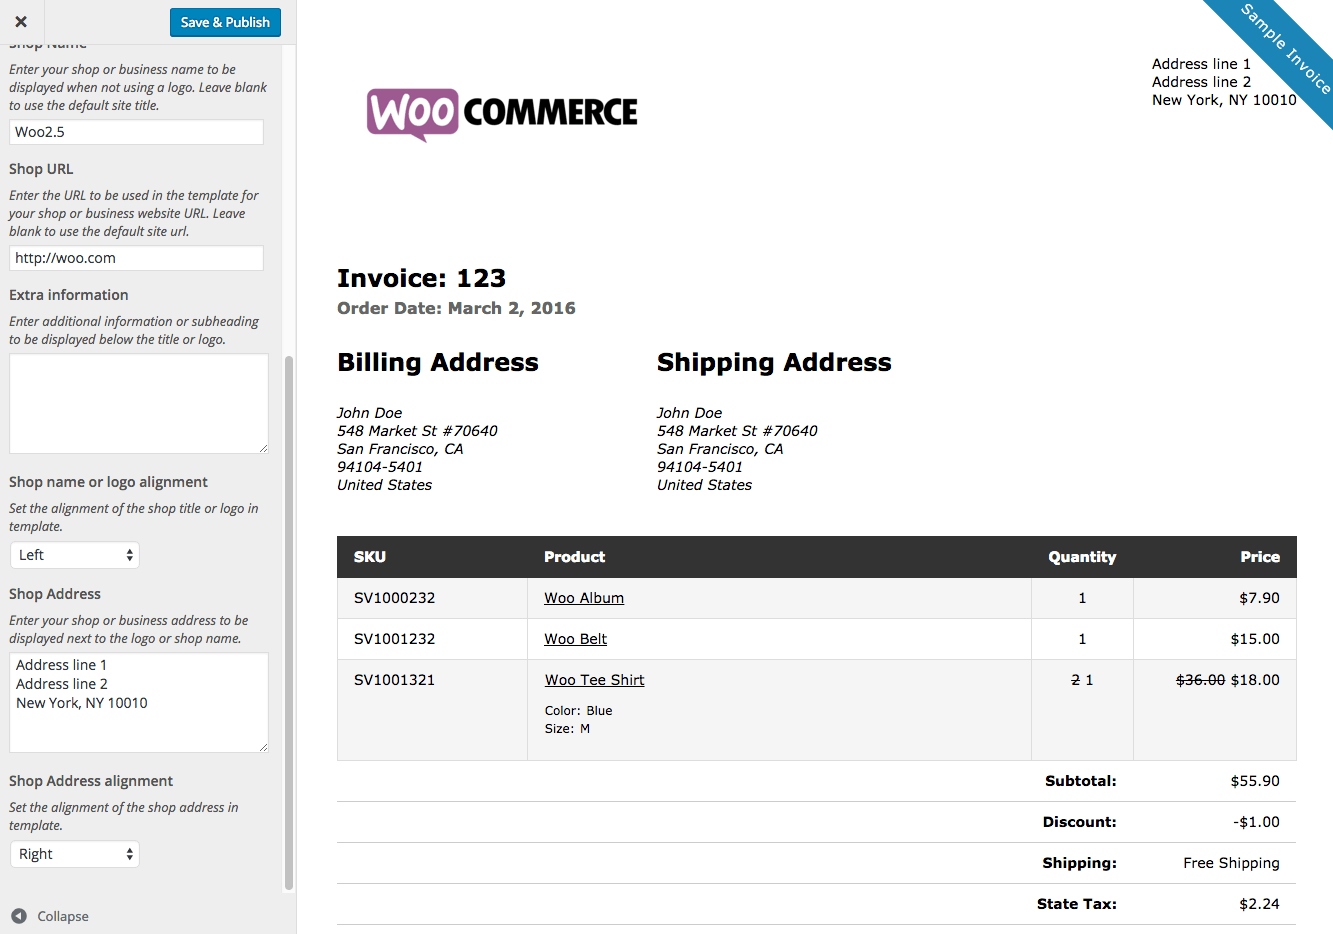 Pxworkoutfreeus  Pretty Woocommerce Print Invoices Amp Packing Lists  Woocommerce Docs With Licious Woocommerce Print Invoices  Packing Lists Customizer With Alluring Dealer Invoices Also Invoice Template Sample In Addition Free Invoice Template Printable And Ups Commercial Invoice Template As Well As Hyundai Elantra Invoice Price Additionally Invoice For Photographers From Docswoocommercecom With Pxworkoutfreeus  Licious Woocommerce Print Invoices Amp Packing Lists  Woocommerce Docs With Alluring Woocommerce Print Invoices  Packing Lists Customizer And Pretty Dealer Invoices Also Invoice Template Sample In Addition Free Invoice Template Printable From Docswoocommercecom